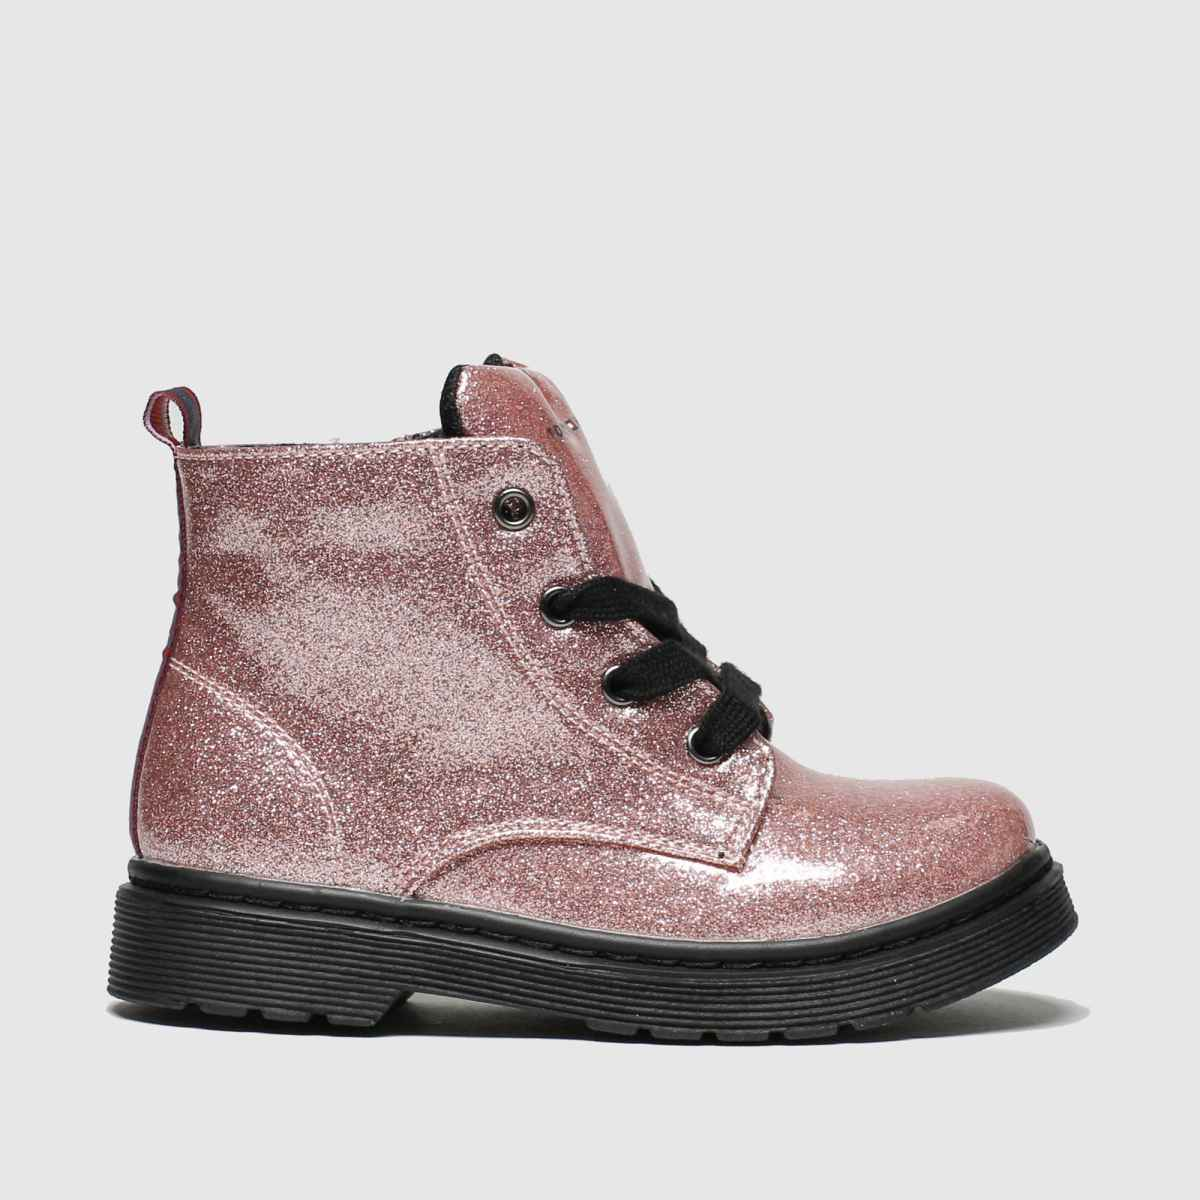 Tommy Hilfiger Pink Lace Up Bootie Boots Toddler